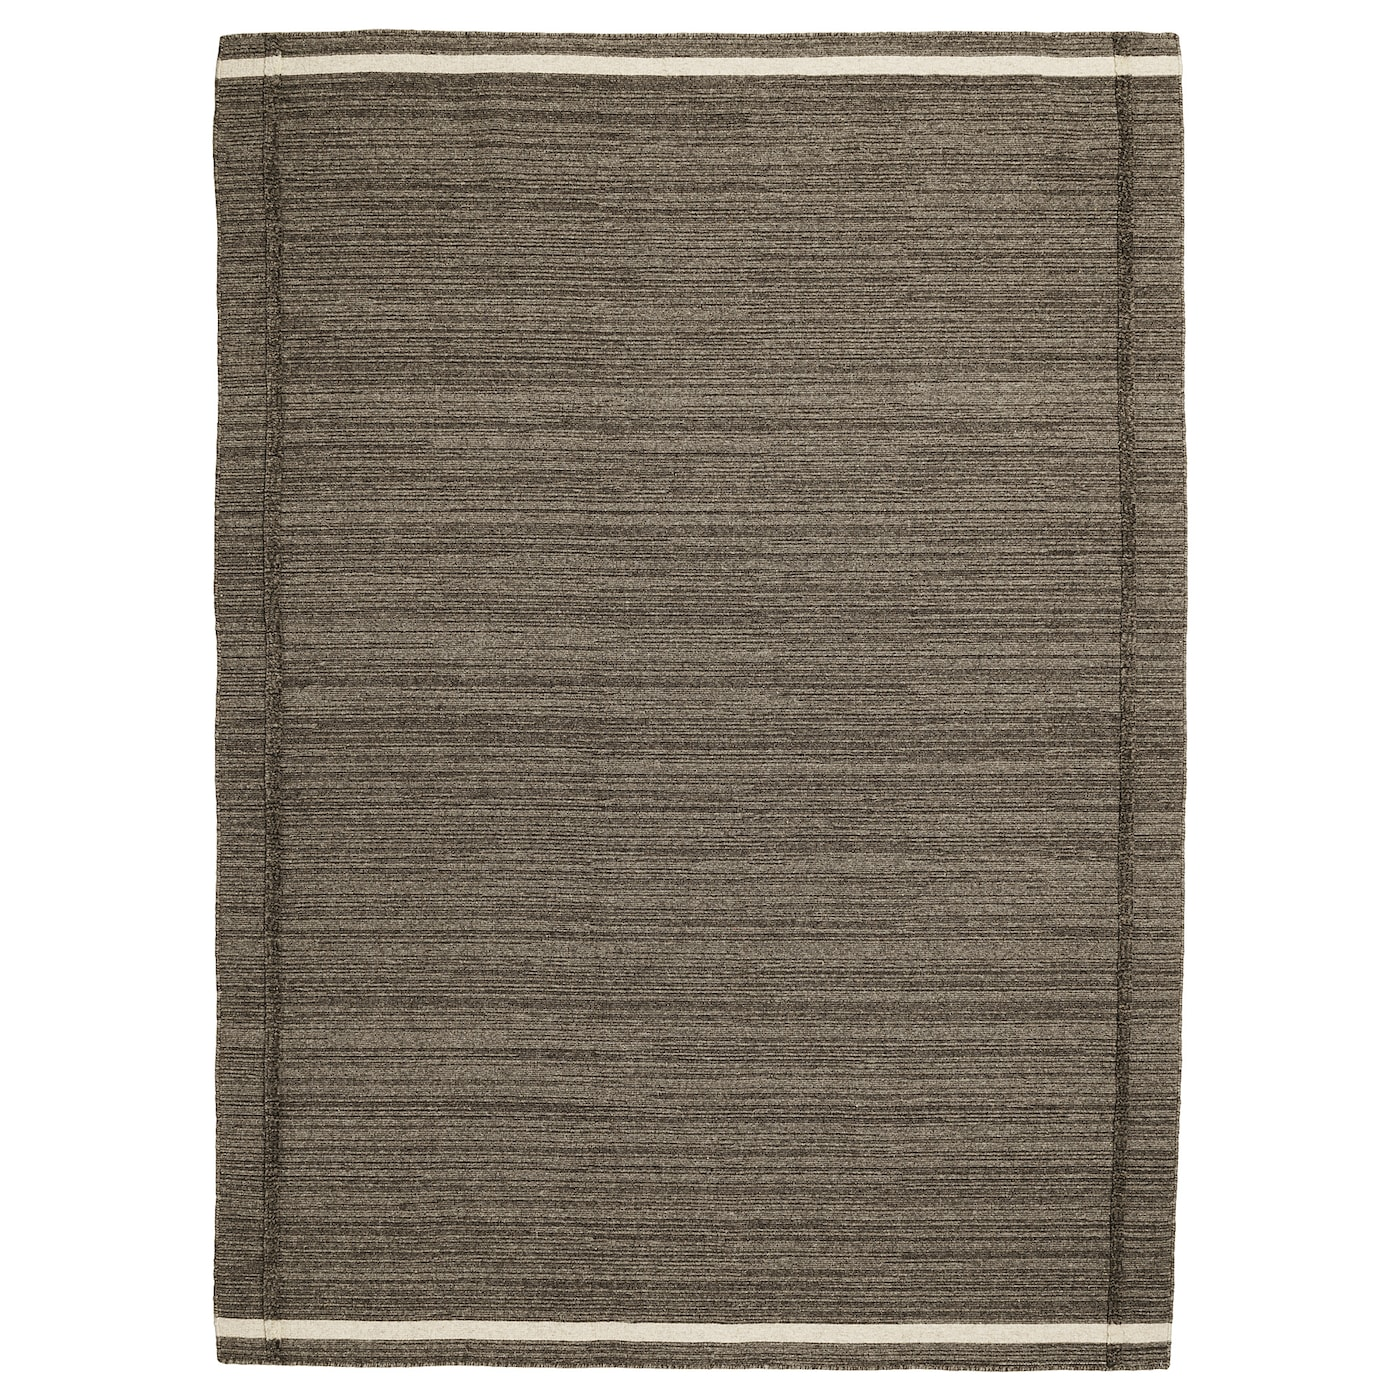 IKEA HÖJET rug, flatwoven The rug is made of wool so it's naturally soil-repellent and very durable.